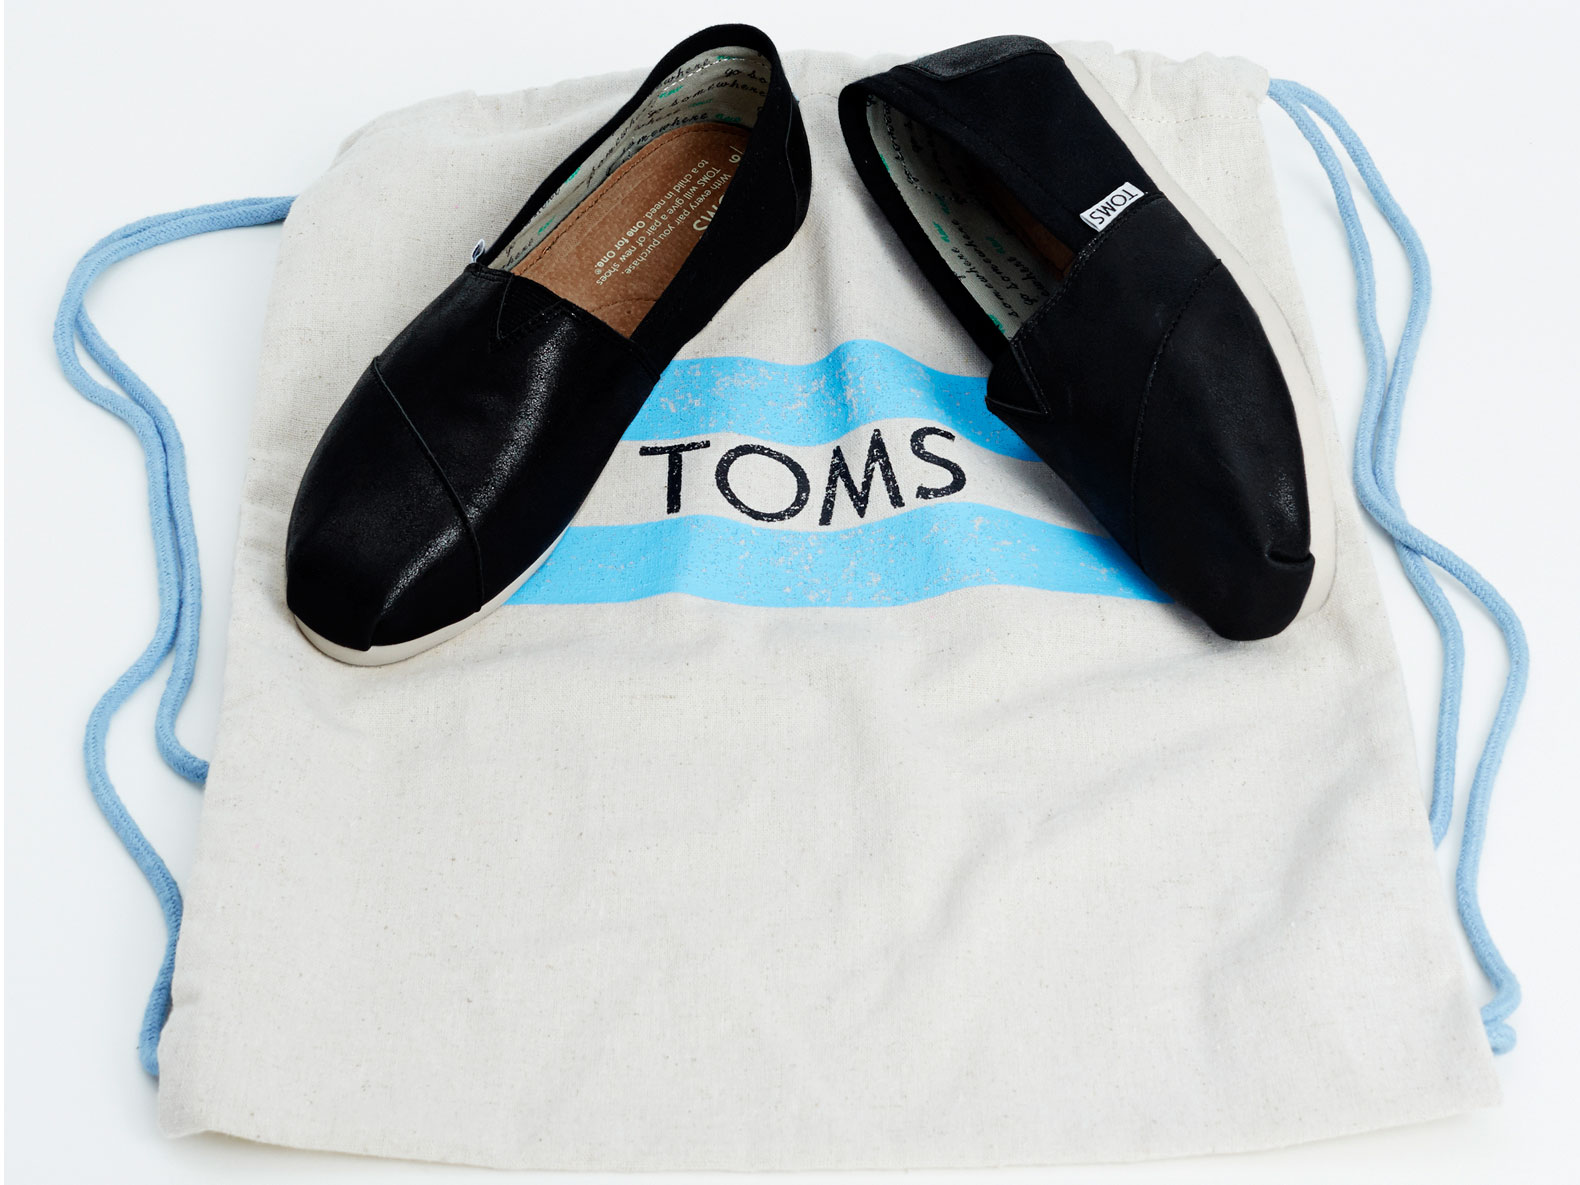 Peta Gives Toms Compassionate Business Award